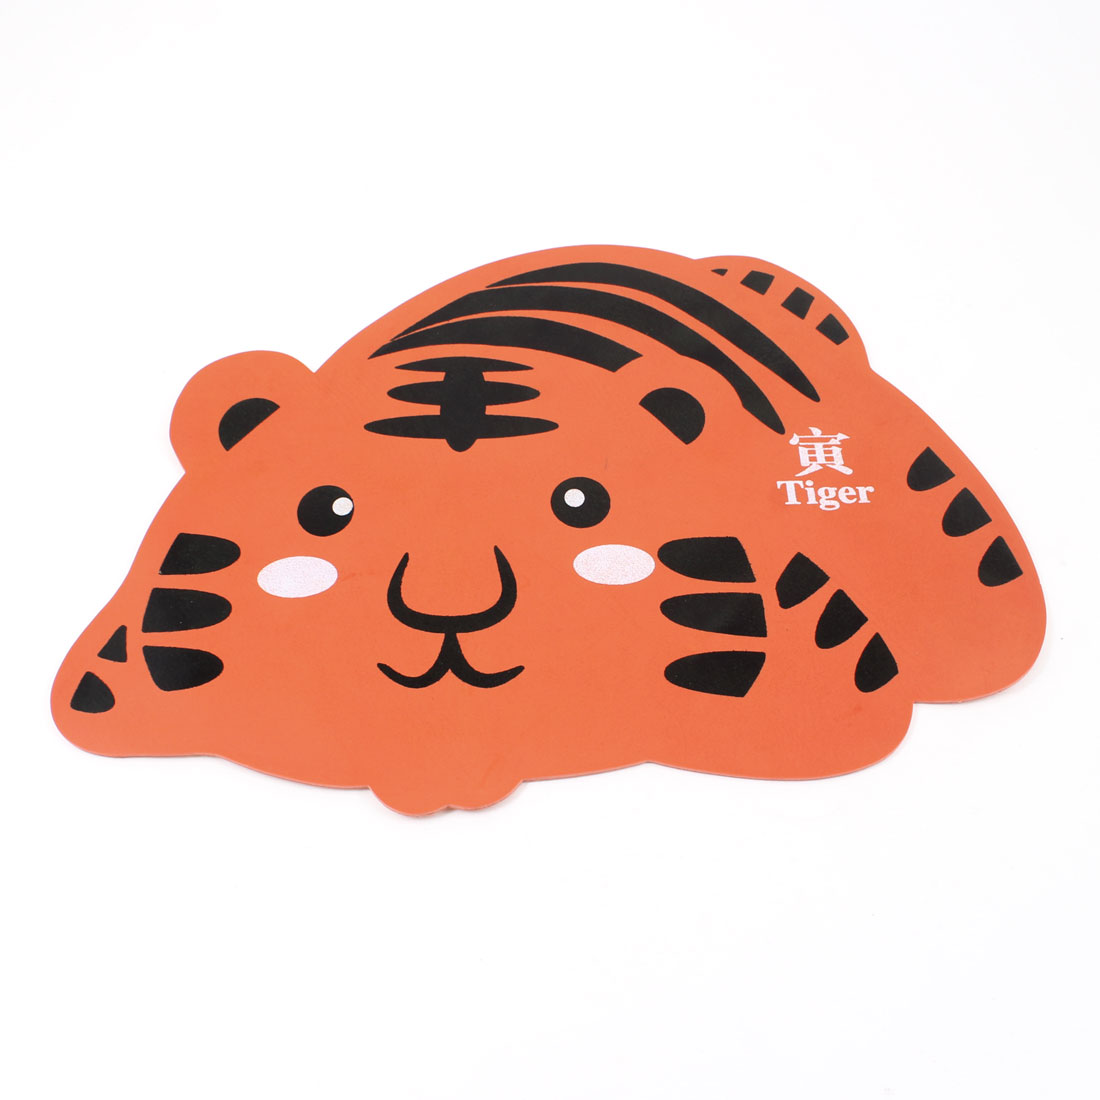 Desktop Chinese Zodiac Cartoon Tiger Design Rubber Mouse Pad Mat Black Orange